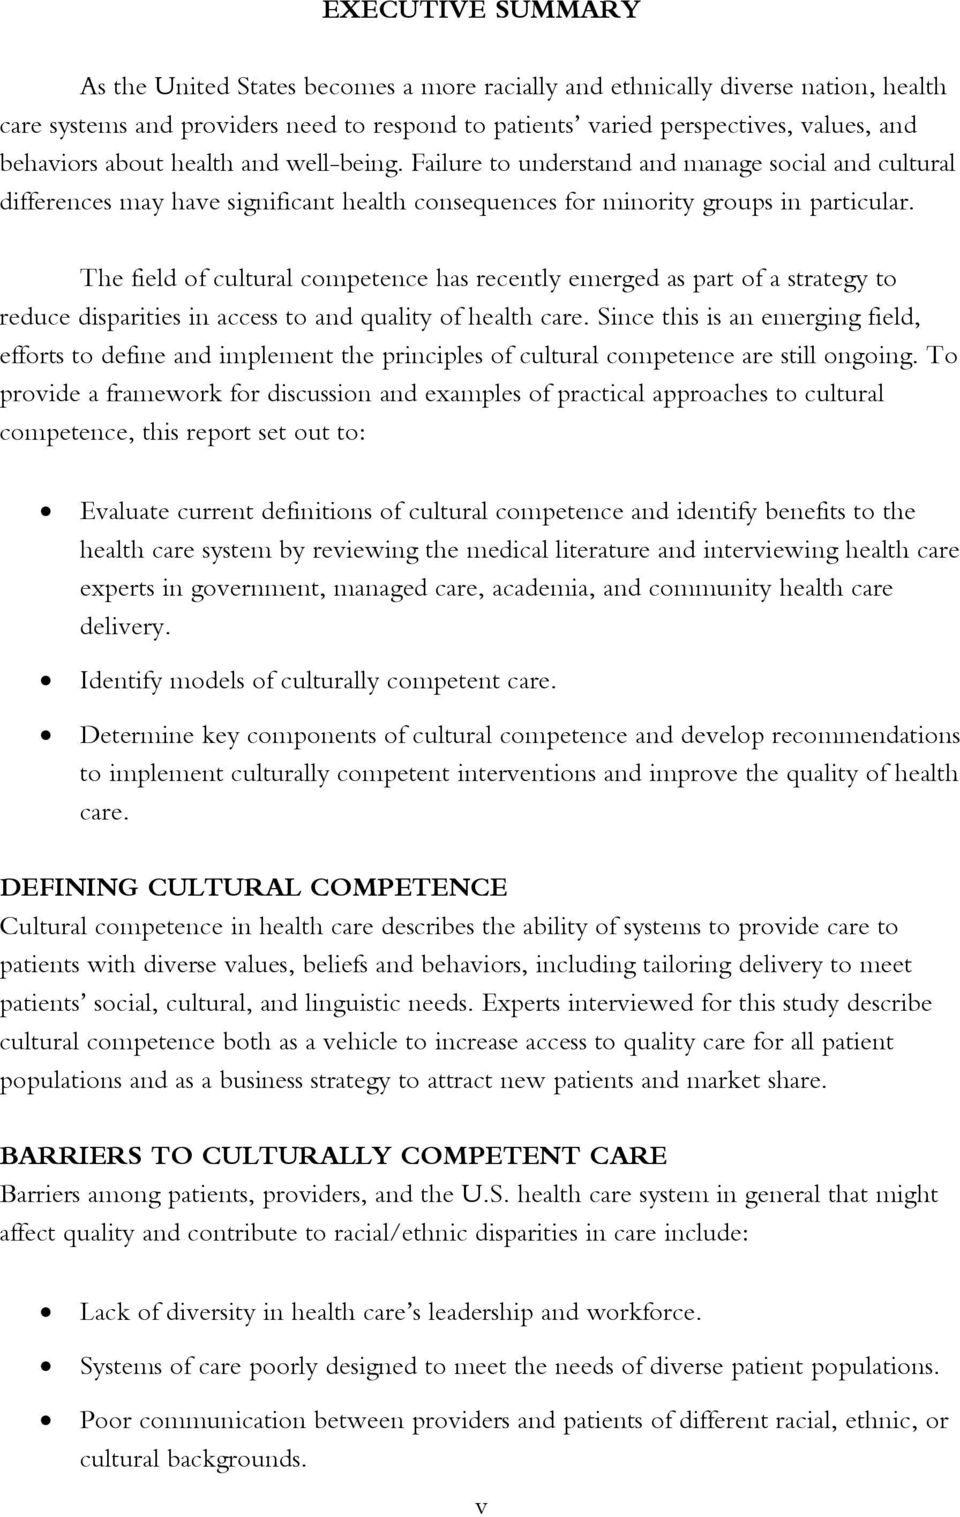 The field of cultural competence has recently emerged as part of a strategy to reduce disparities in access to and quality of health care.